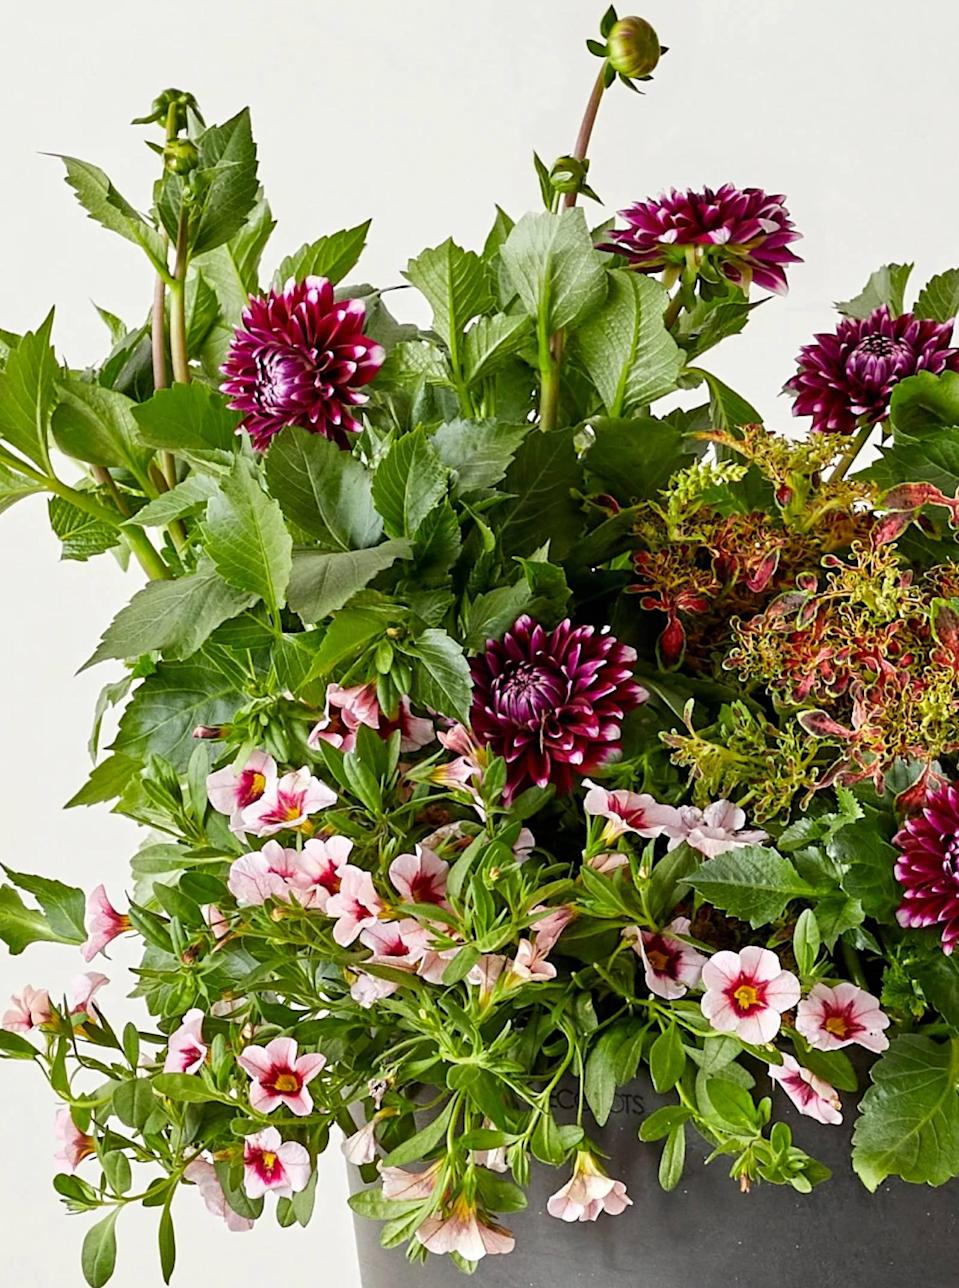 """Moms busy in their garden right now will be thrilled to receive this growing kit of purple and white dahlias, pink calibrachoas, and coleus. These outdoor blooms are perfect for a sunny spot on her porch or in her backyard, and you can add flowering pots and soil to your order. Bloomscape kits are shipped nationwide with two-day shipping. $25, Purple and White Dahlia, Pink Calibrachoa, and Coleus Combination Kit. <a href=""""https://bloomscape.com/product/purple-dahlia-pink-calibrachoa/"""" rel=""""nofollow noopener"""" target=""""_blank"""" data-ylk=""""slk:Get it now!"""" class=""""link rapid-noclick-resp"""">Get it now!</a>"""